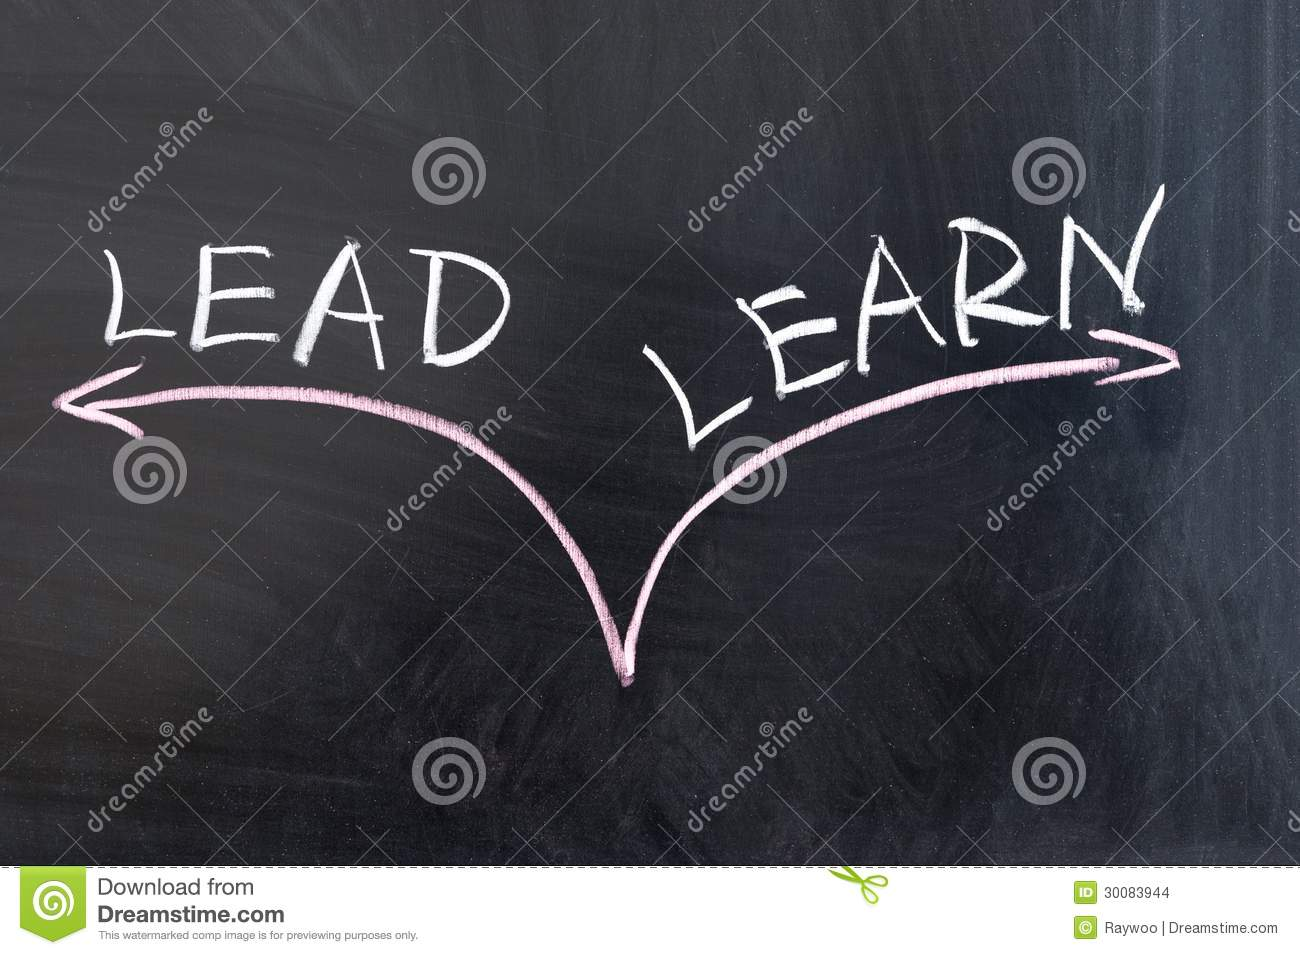 Lead or learn